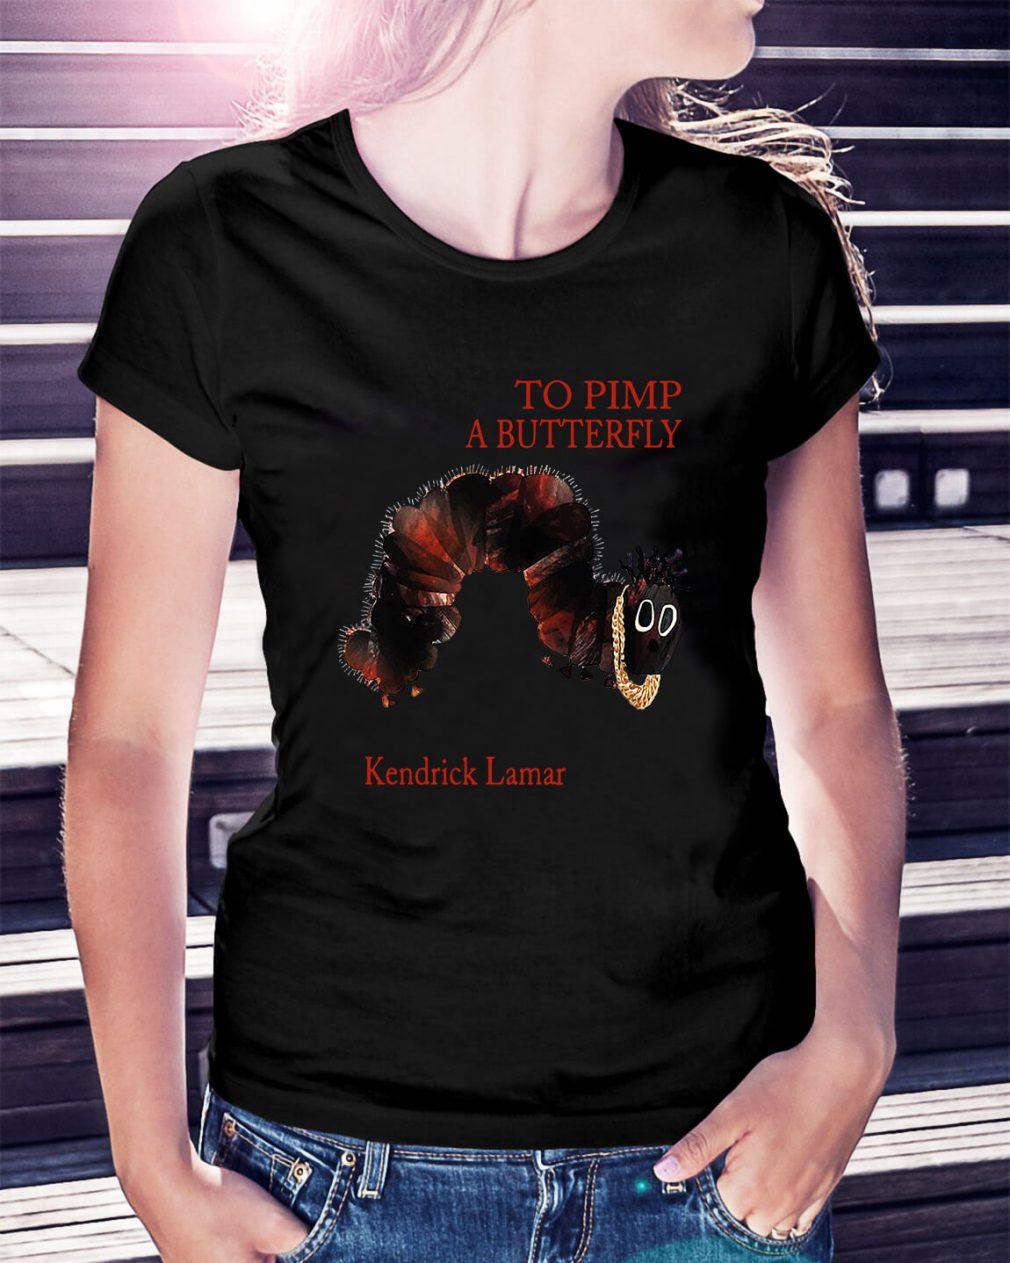 To pimp a butterfly Kendrick Lamar Ladies Tee